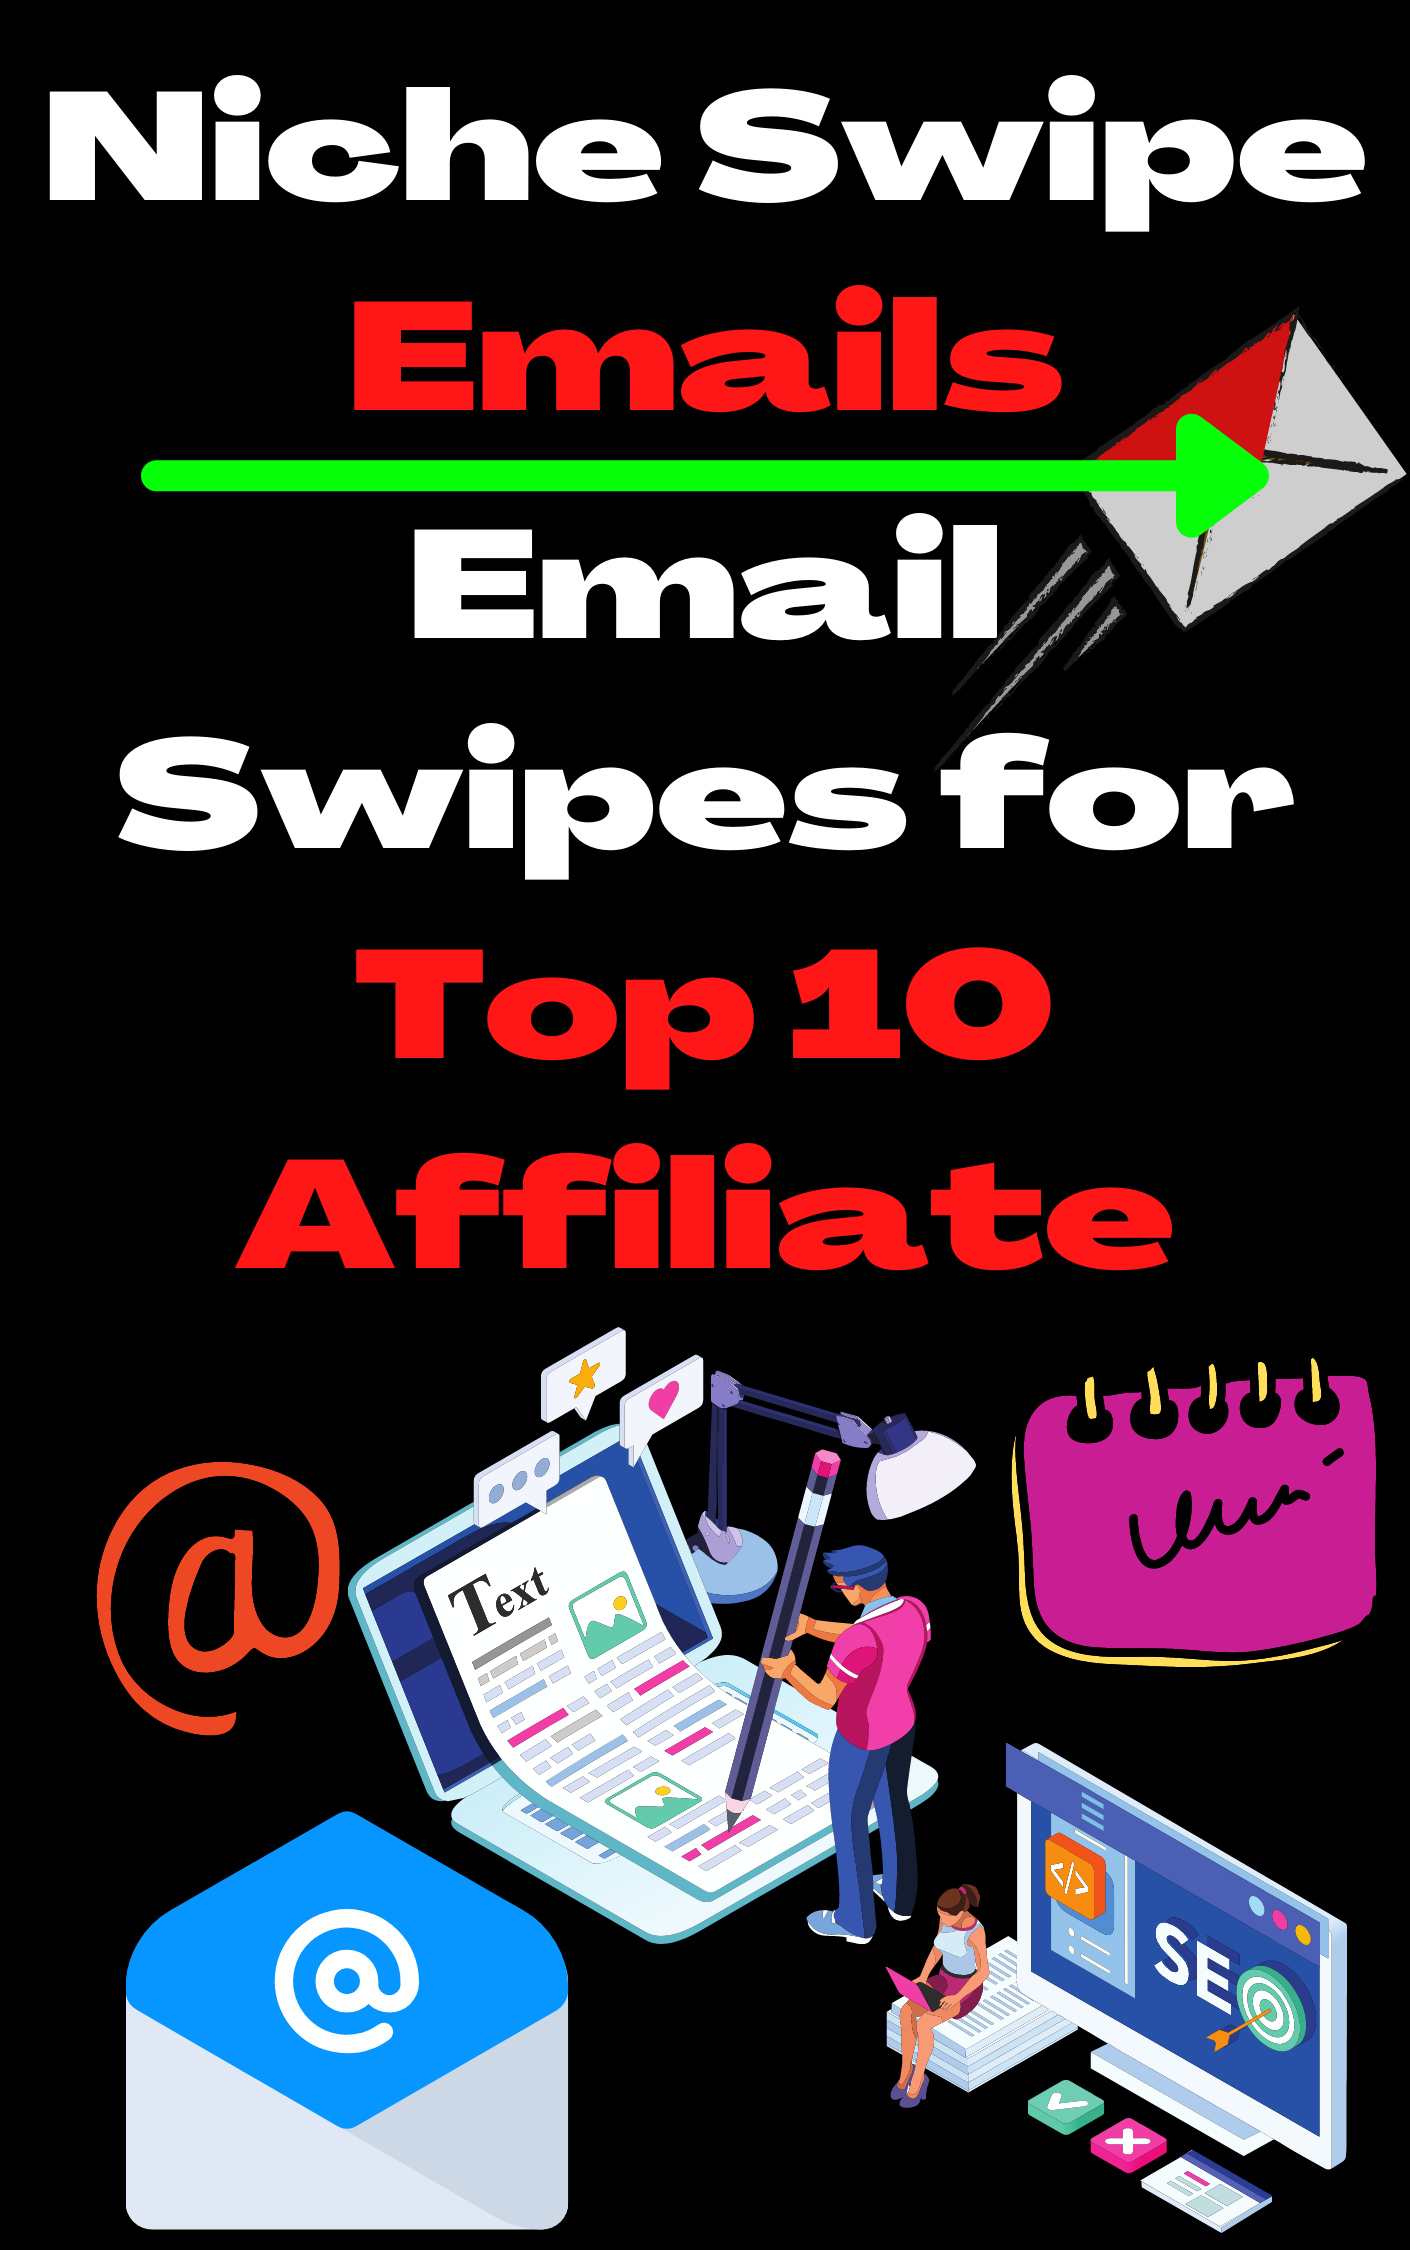 Niche Swipe Emails - Email Swipes for Top 10 Affiliate Niches 2021